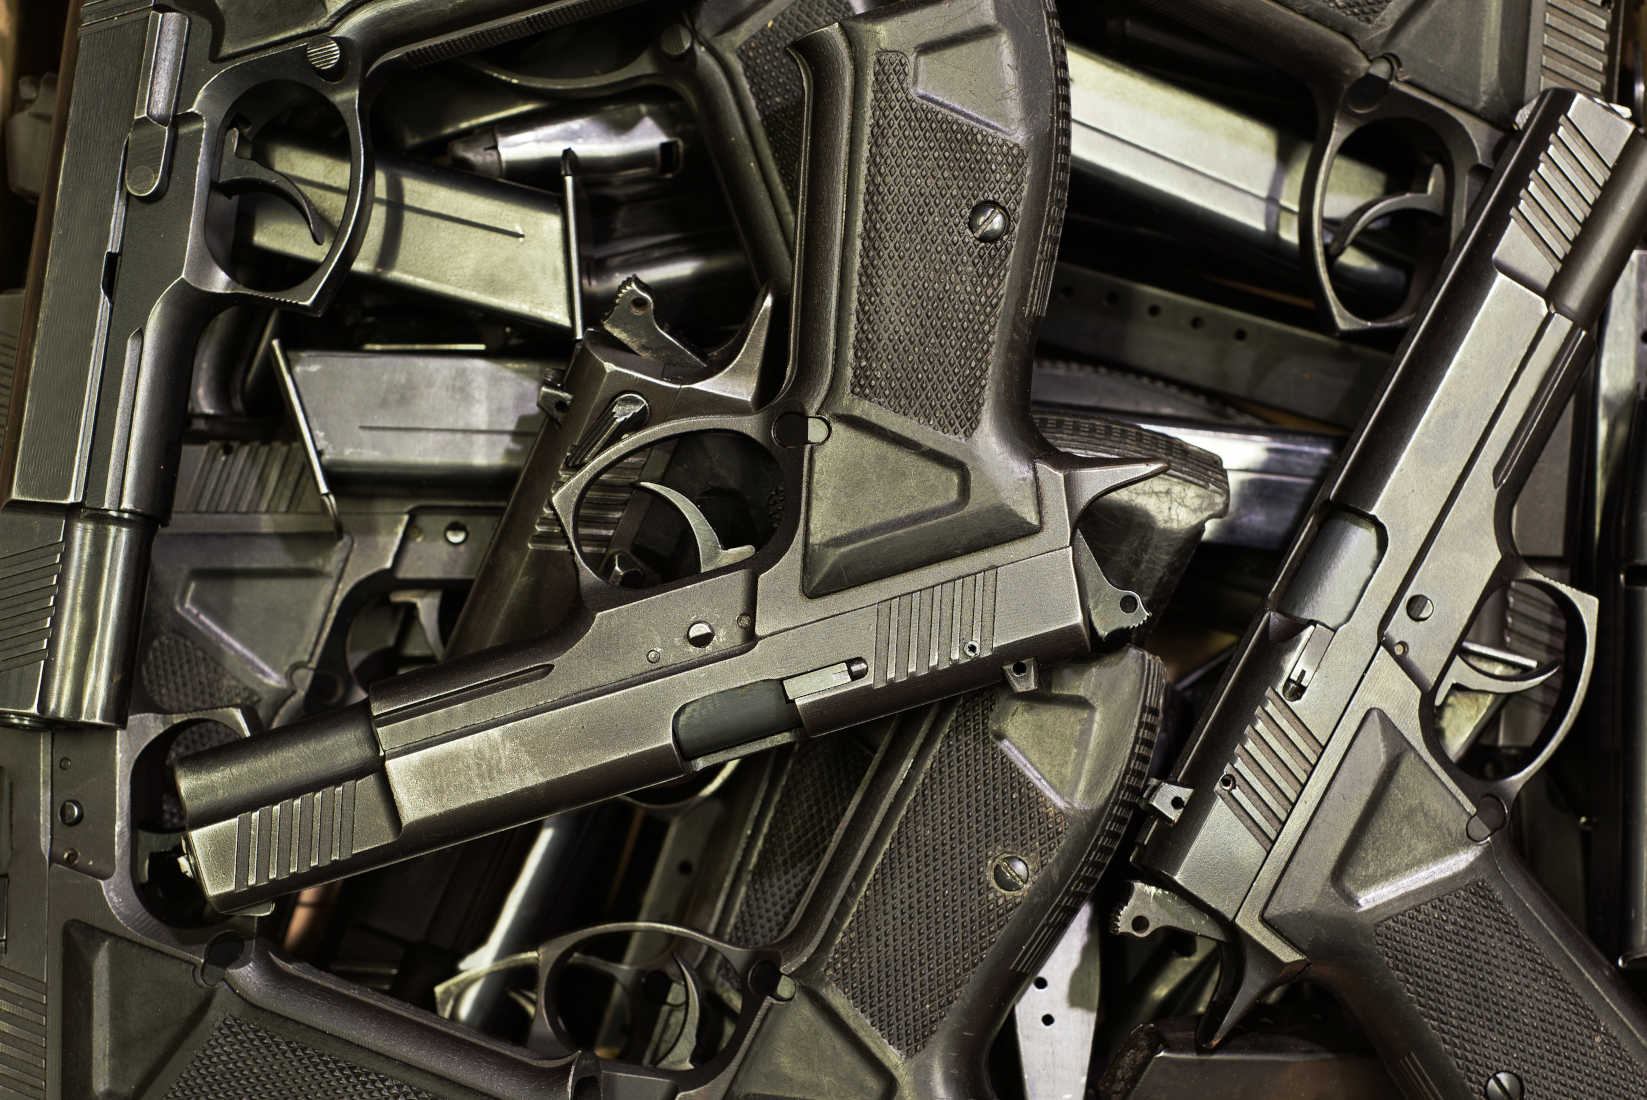 Nearly 50 Oregon Gun Owners Have Their Firearms Seized by the State